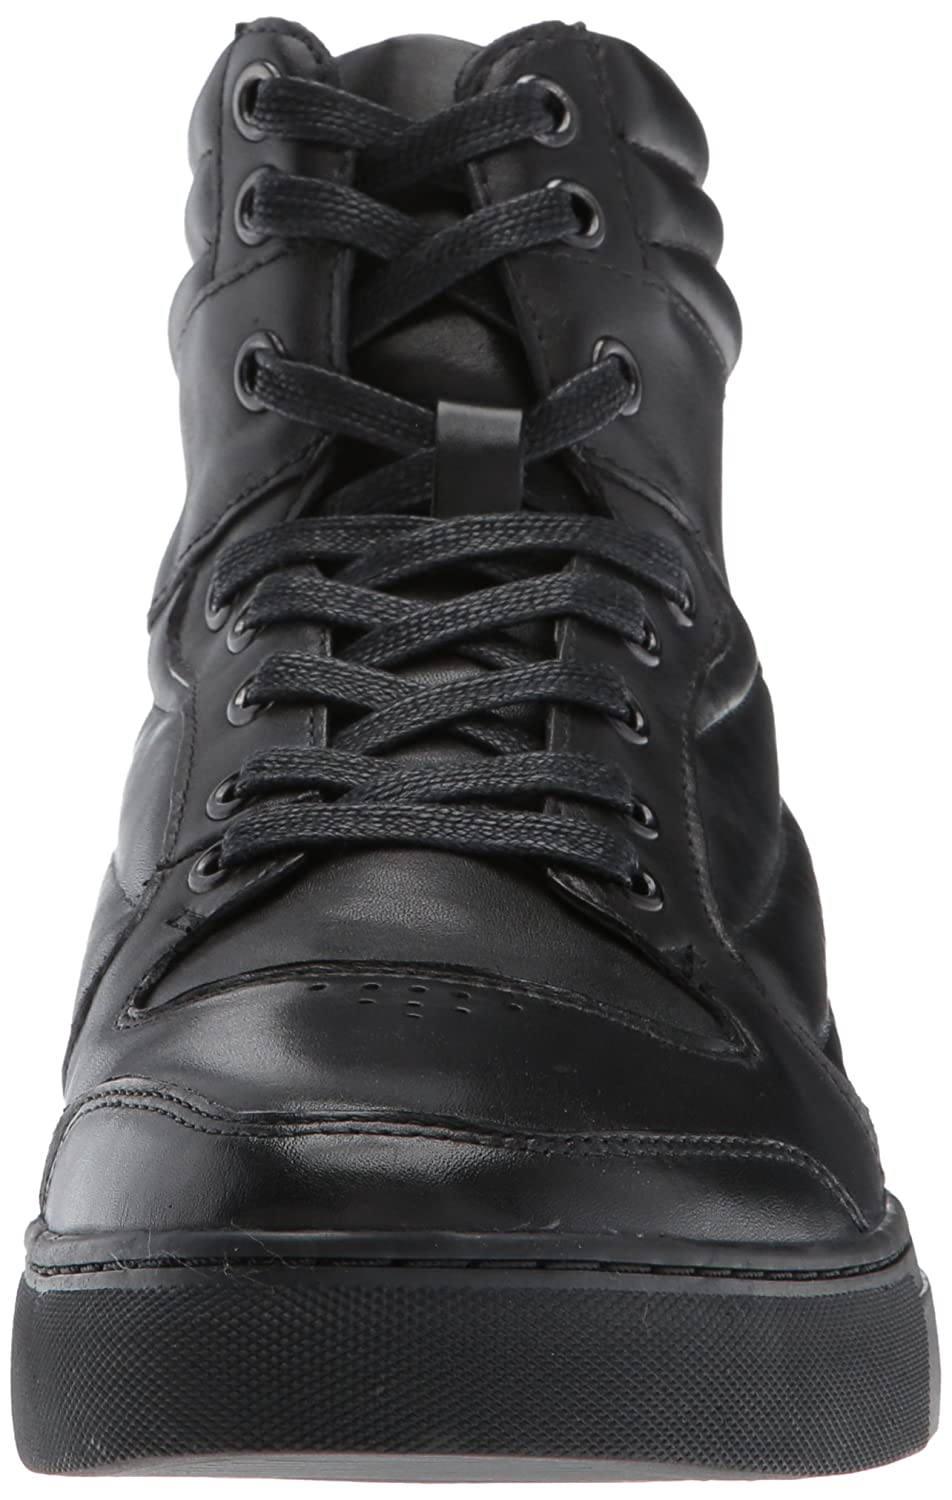 Zanzara Vacdes Casual Lace-up High Top Fashion Sneakers for Men